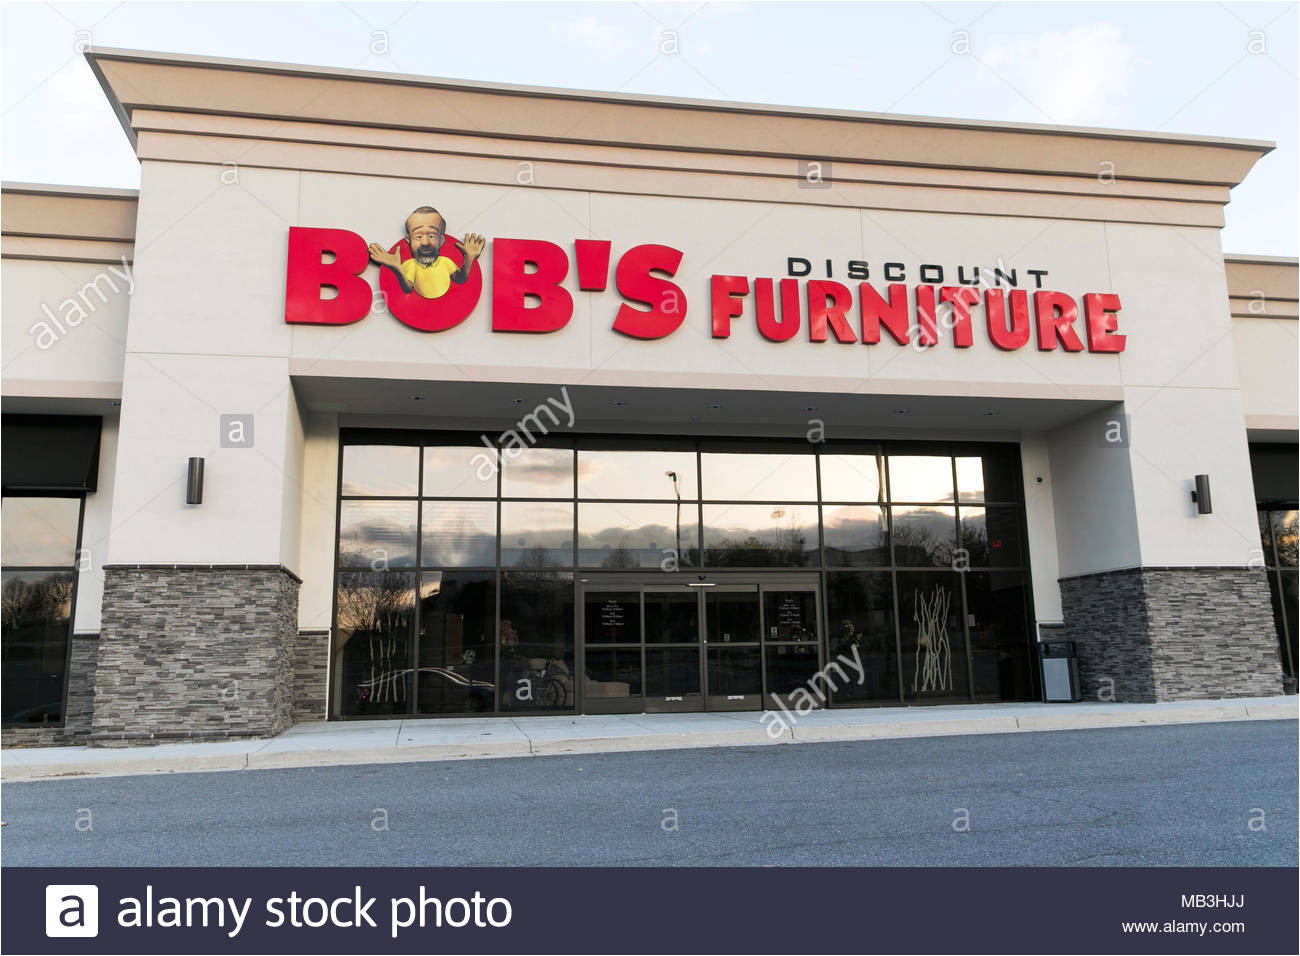 a bob s discount furniture logo seen on a retail store front in hagerstown maryland on